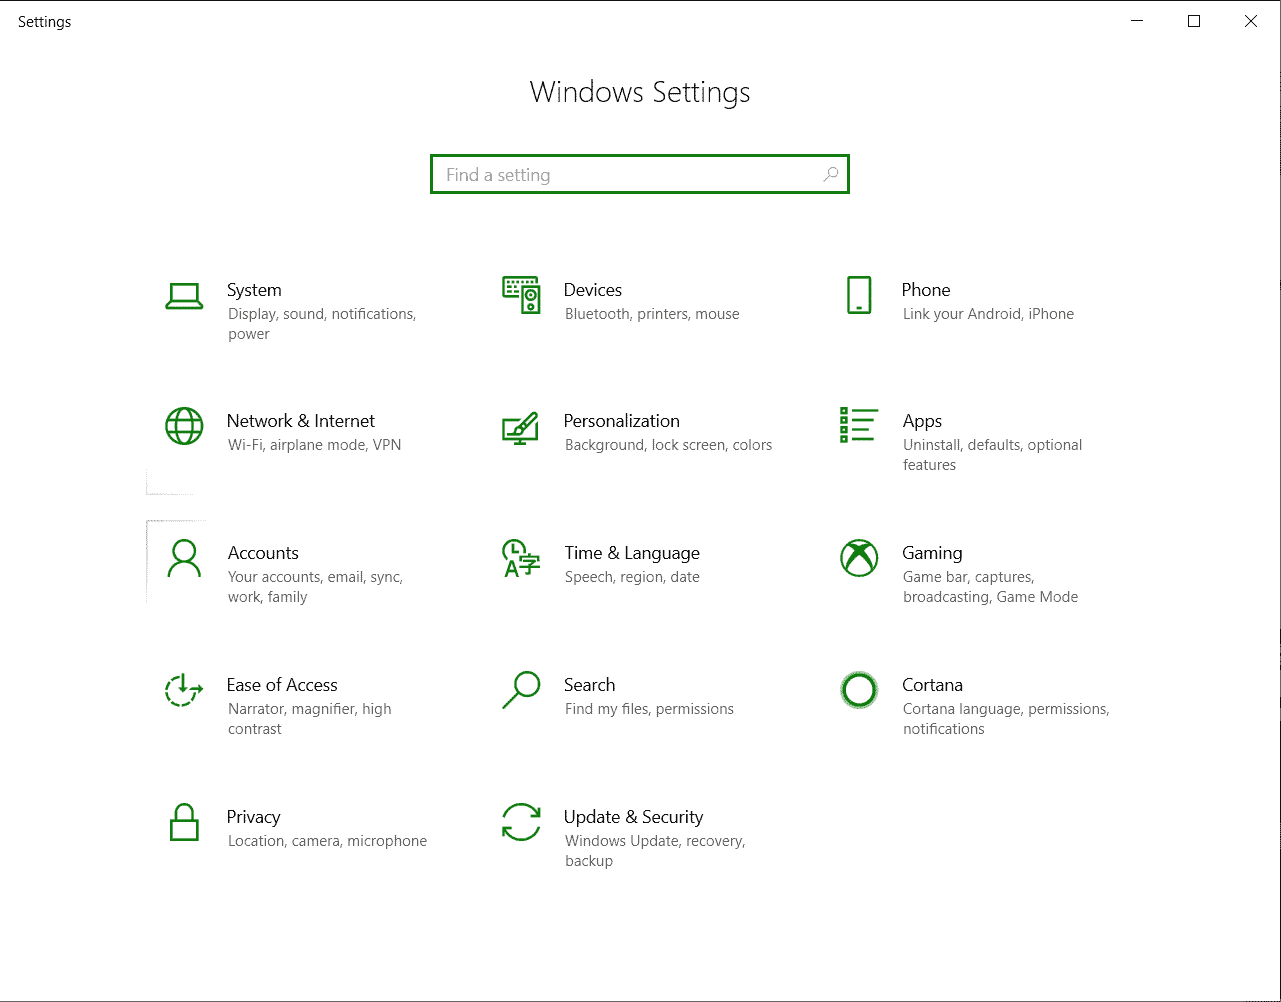 How to Turn Off Airplane Mode in Windows 10